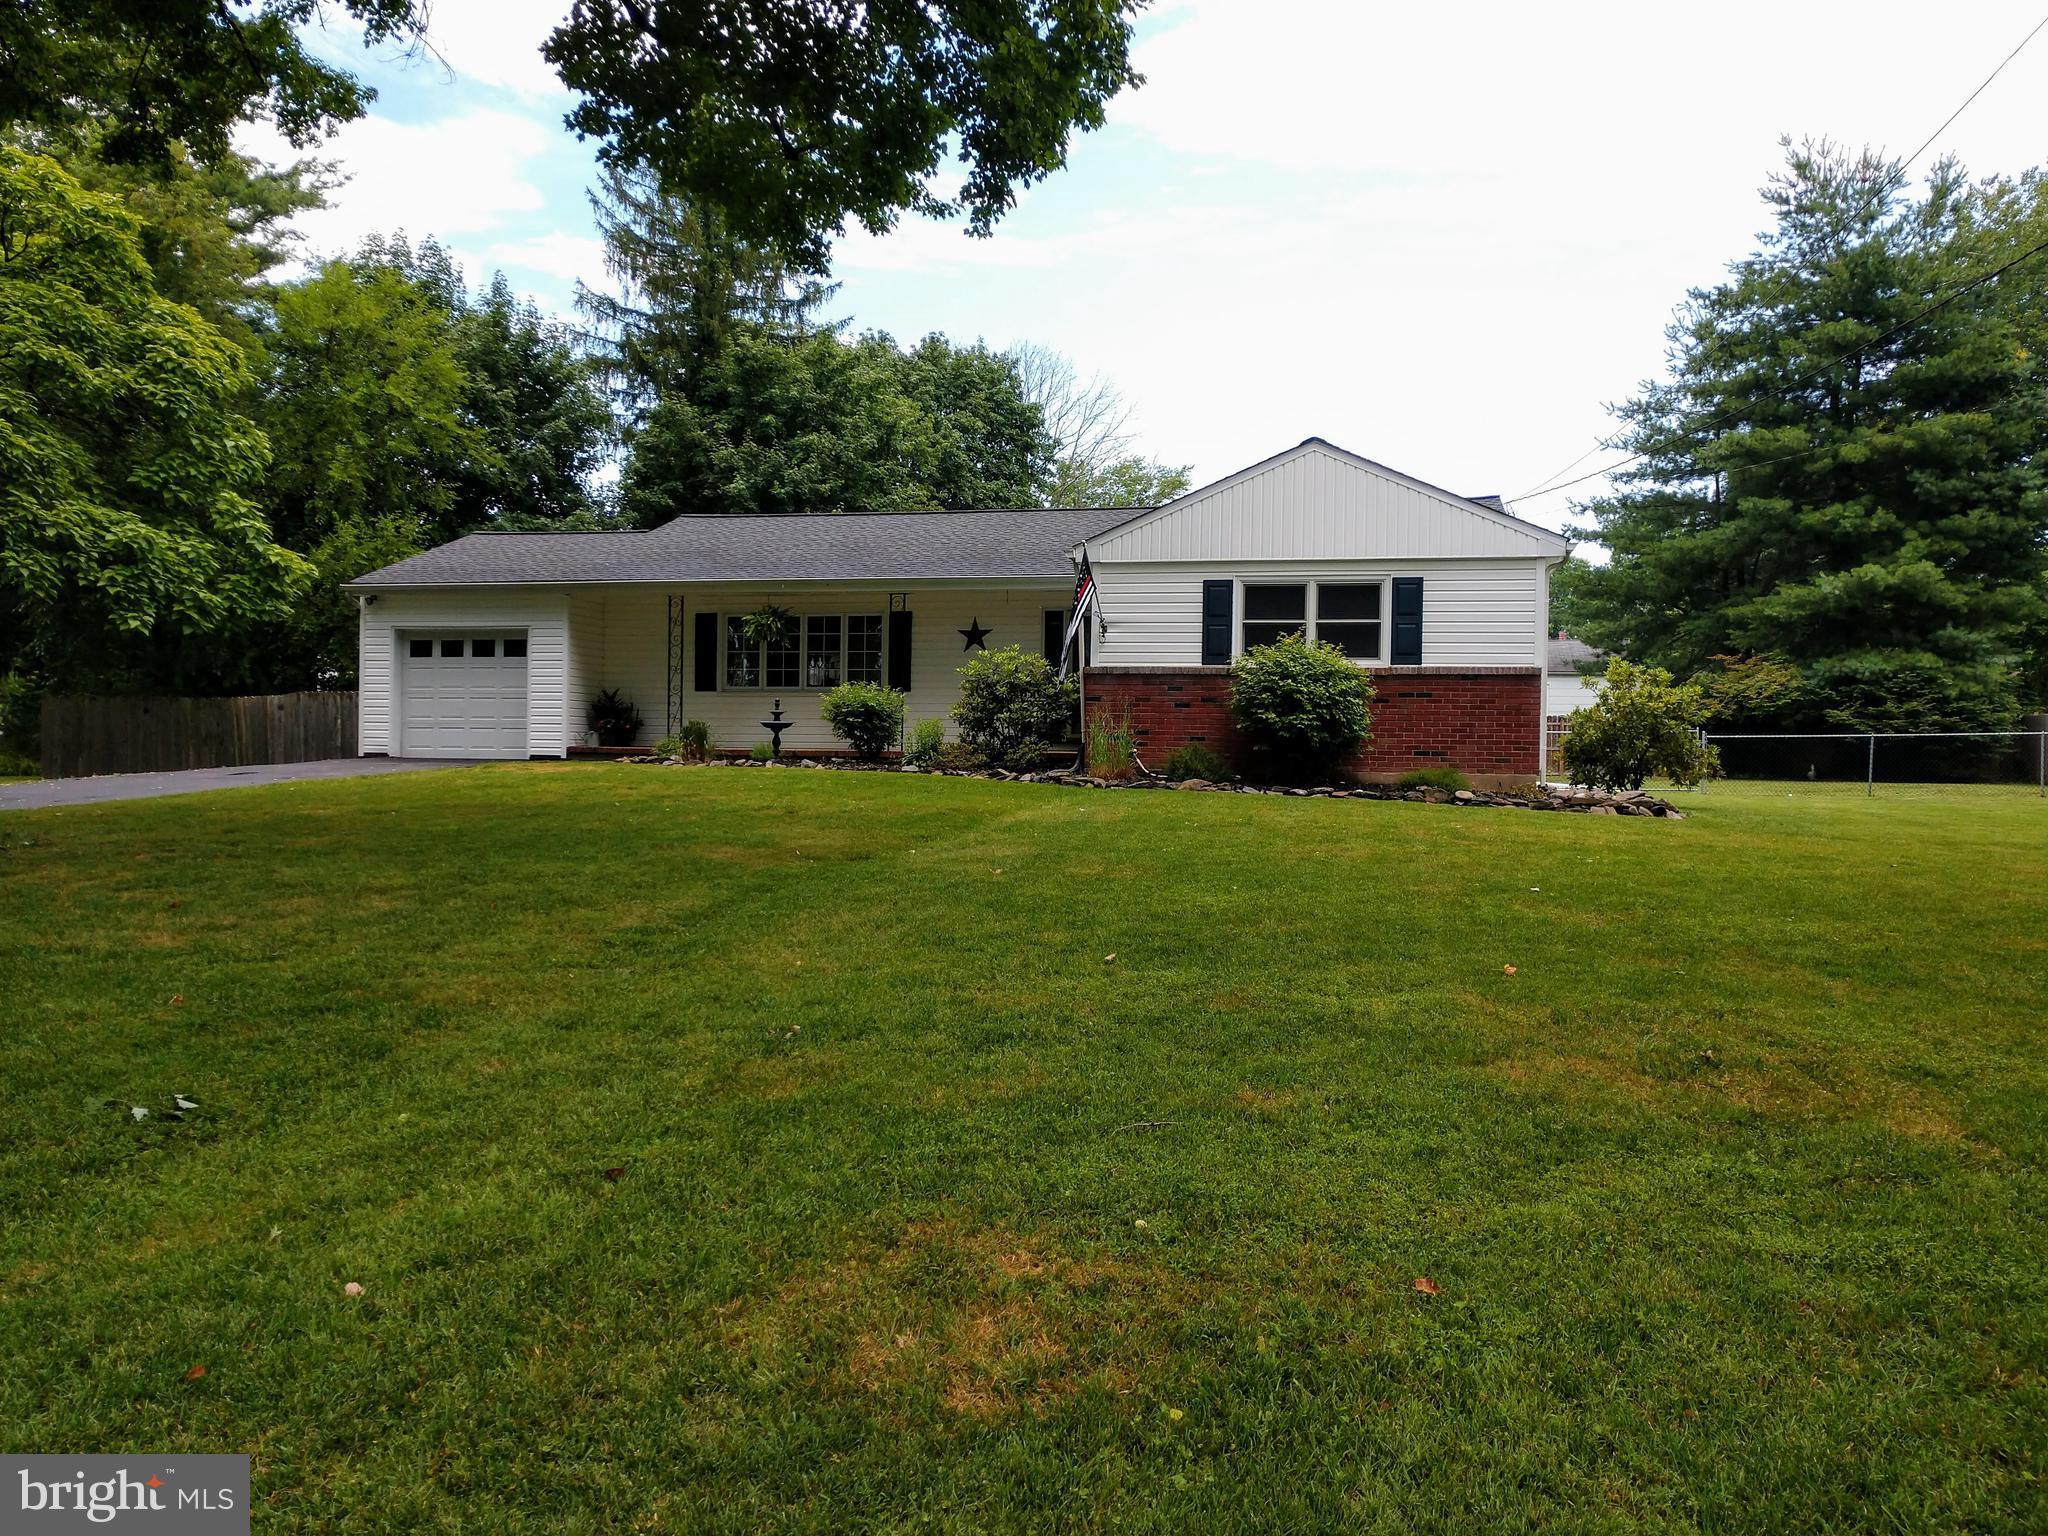 53 BAYBERRY ROAD, EWING, NJ 08618